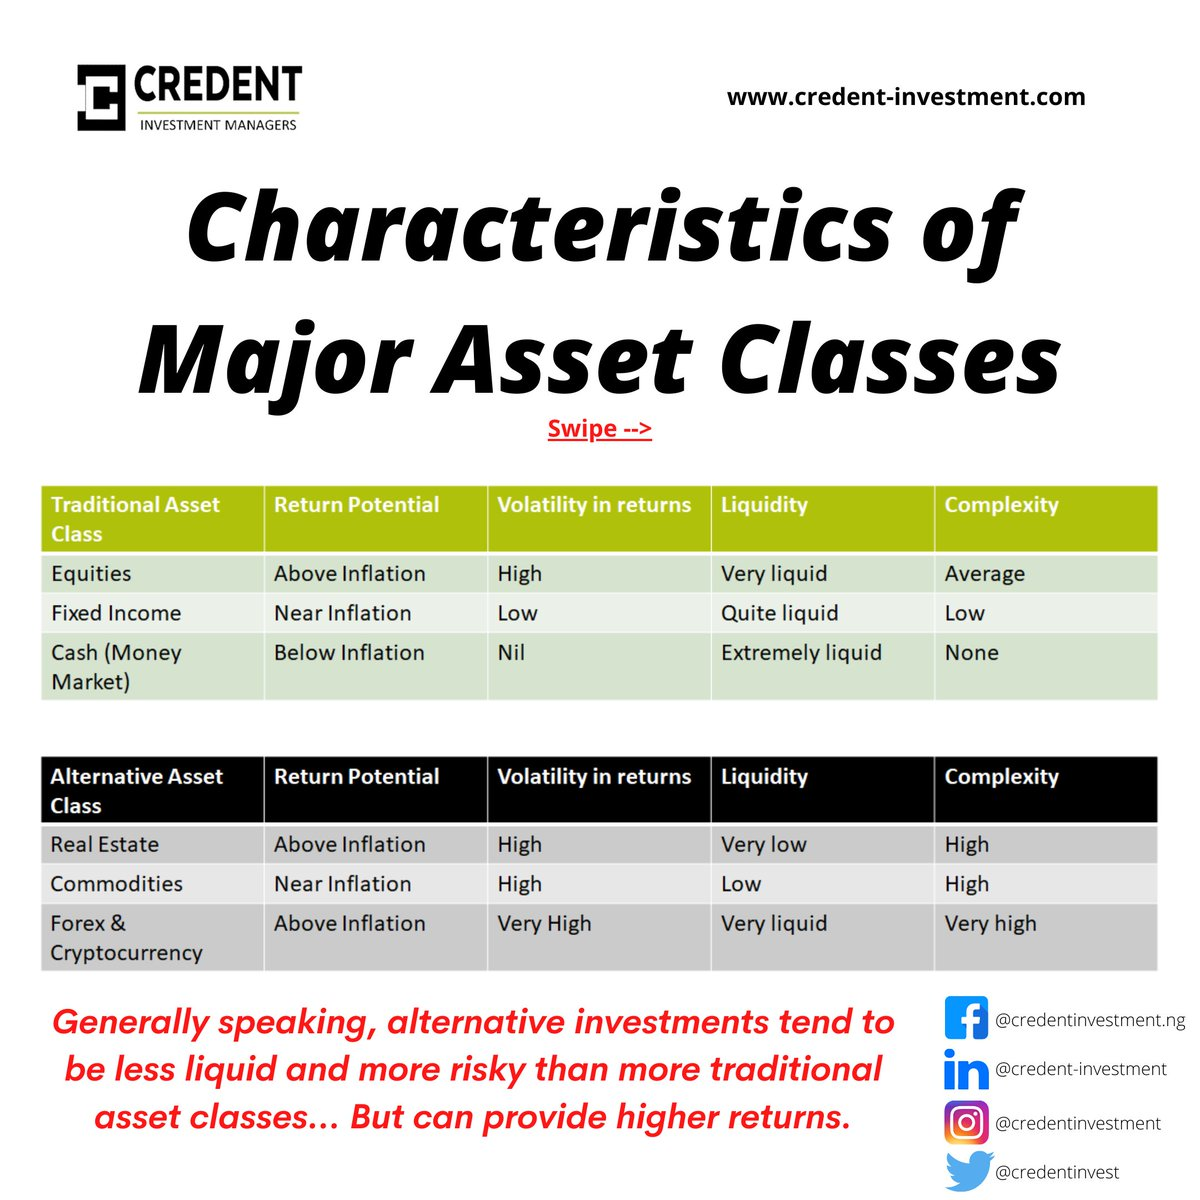 An optimal portfolio will have a combination of asset classes that helps to maximise returns whilst minimizing risk.  #assetmanagement #assetallocation #financialindependence #financialgoals #financialplanning #financialliteracy #financialeducation #wealthmanagementpic.twitter.com/HeNUJb6b4g